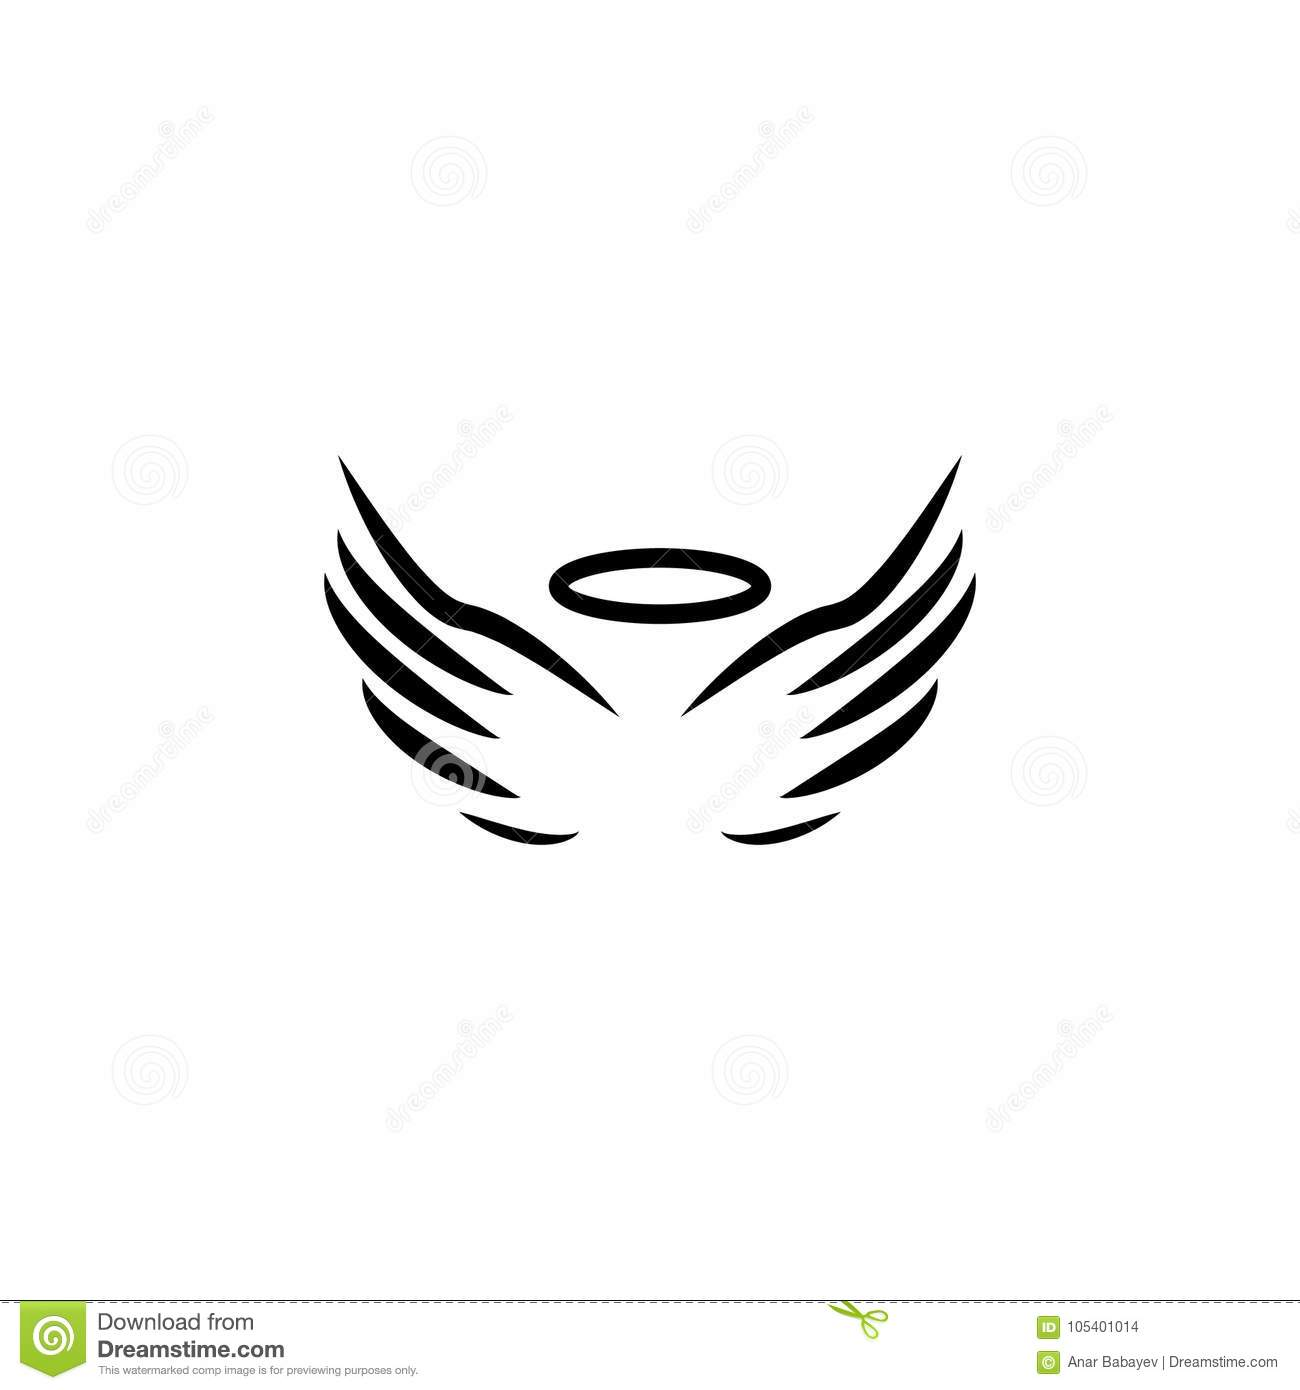 c6ee4f2db Angel wings and halo icon stock vector. Illustration of curve ...